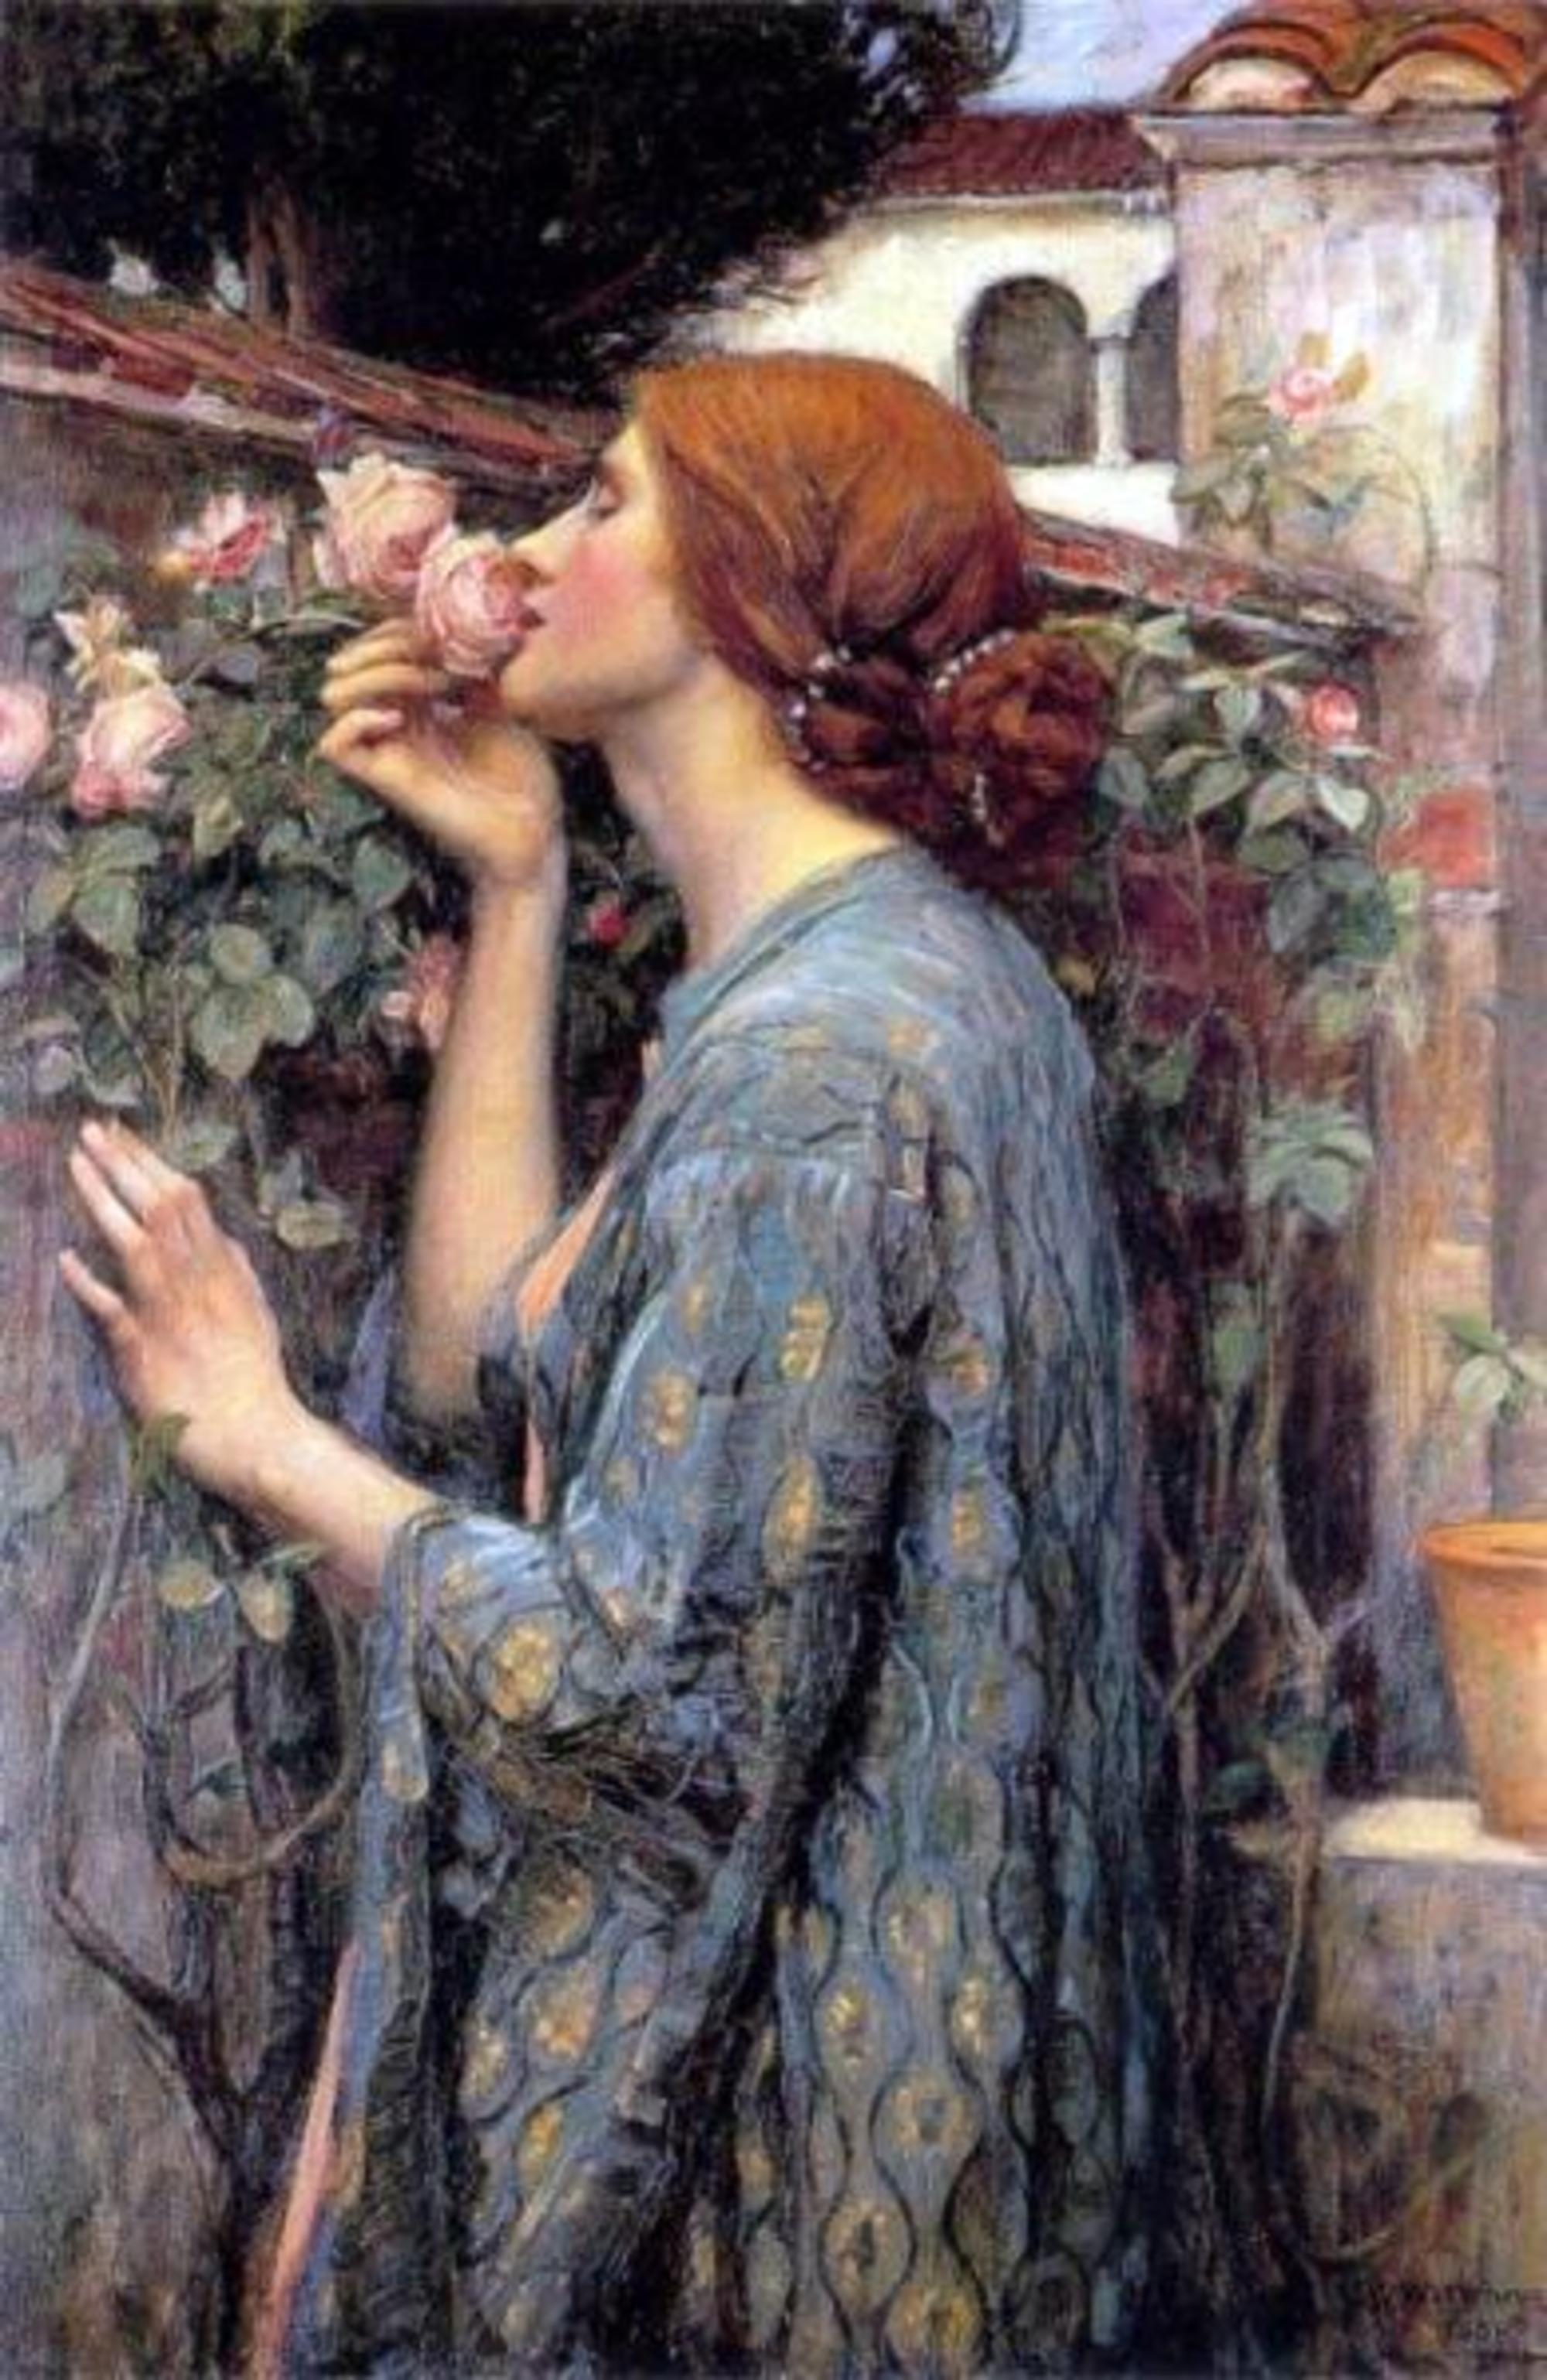 John_William_Waterhouse_-_The_Soul_of_the_Rose_aka_My_Sweet_Rose.jpg